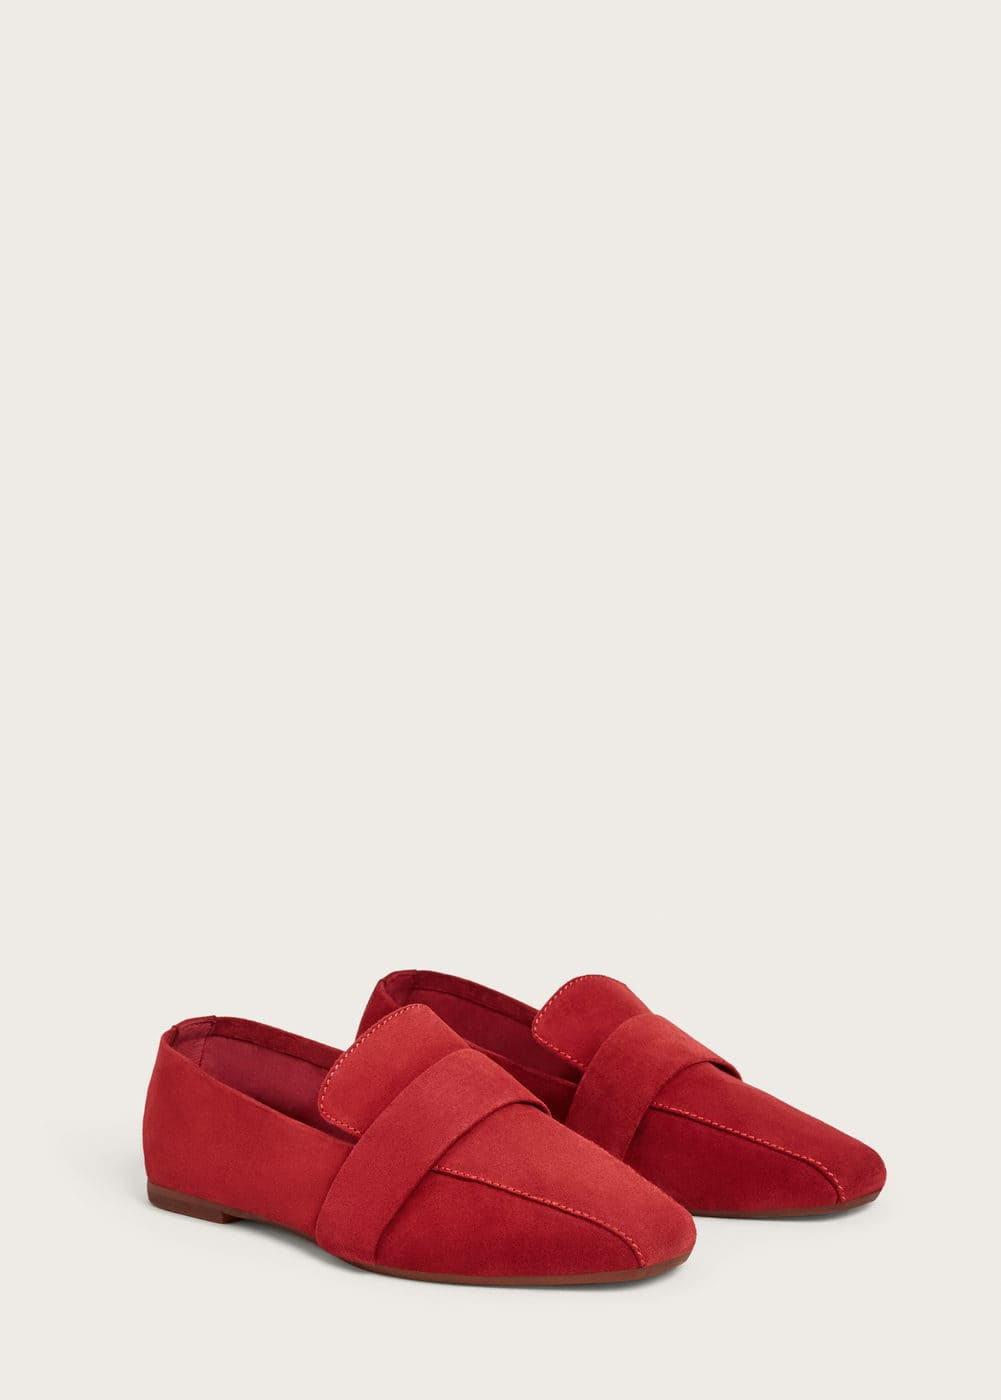 Suede leather loafers | VIOLETA BY MANGO